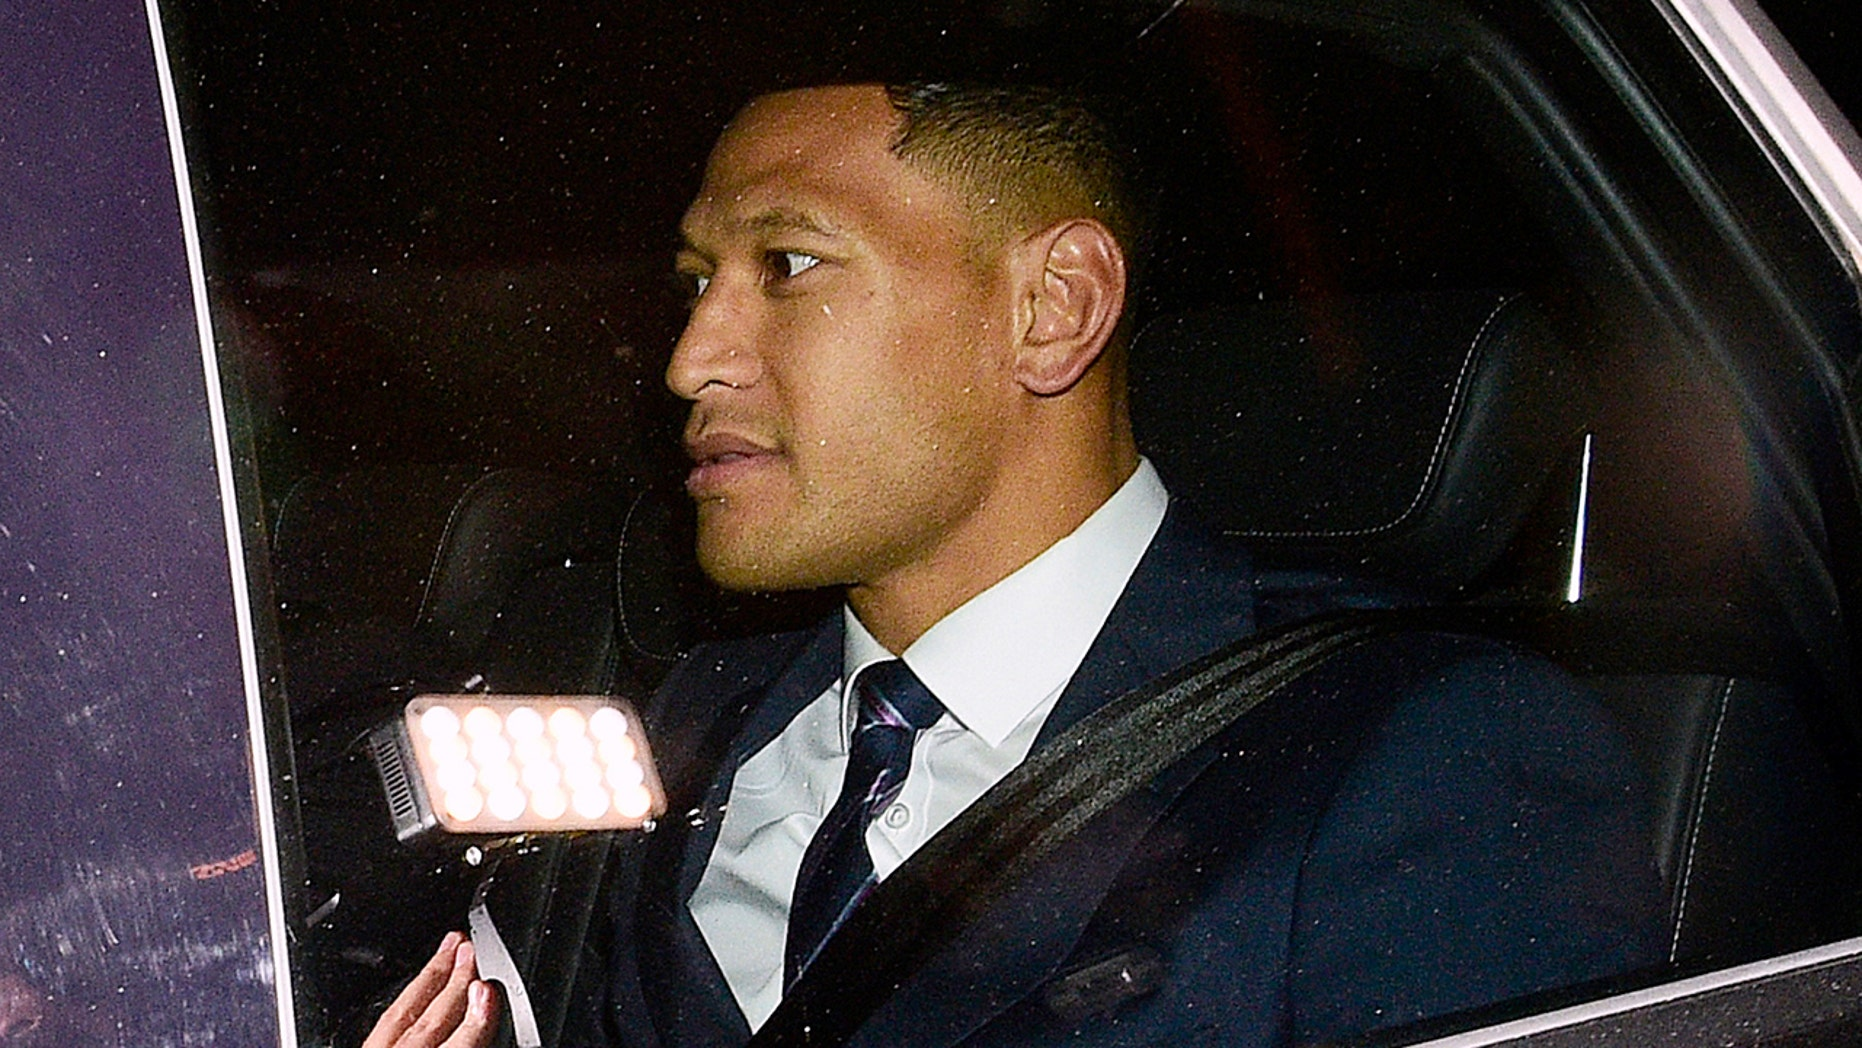 """Australian rugby union player Israel Folau leaves a Code of Conduct hearing in Sydney, Sunday, May 5, 2019. The 30-year-old Folau appeared before the hearing to fight Rugby Australia's decision to terminate his contract after he posted in mid-April on social media that gay people, along with other """"sinners,"""" will face damnation unless they repent. (AAP Image/Bianca De Marchi)"""